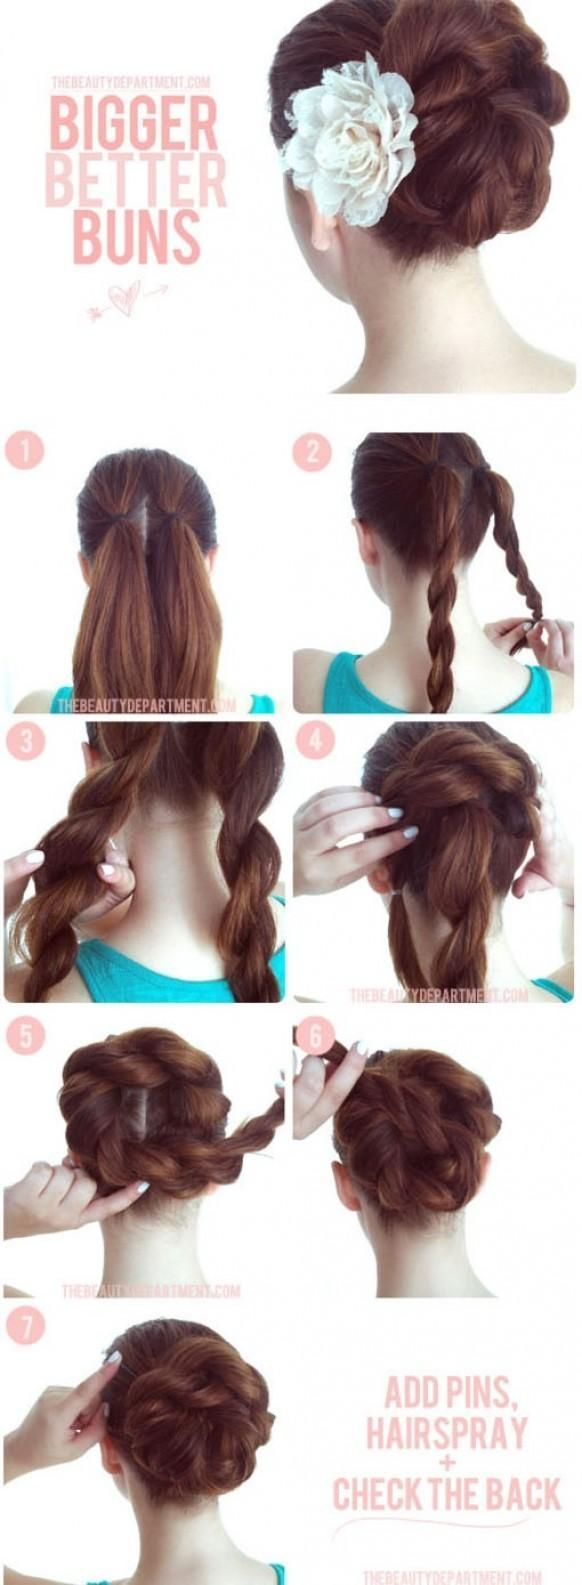 Long Hairstyles for Girls Step By Step Tutorial & Trends with Pictures (14)